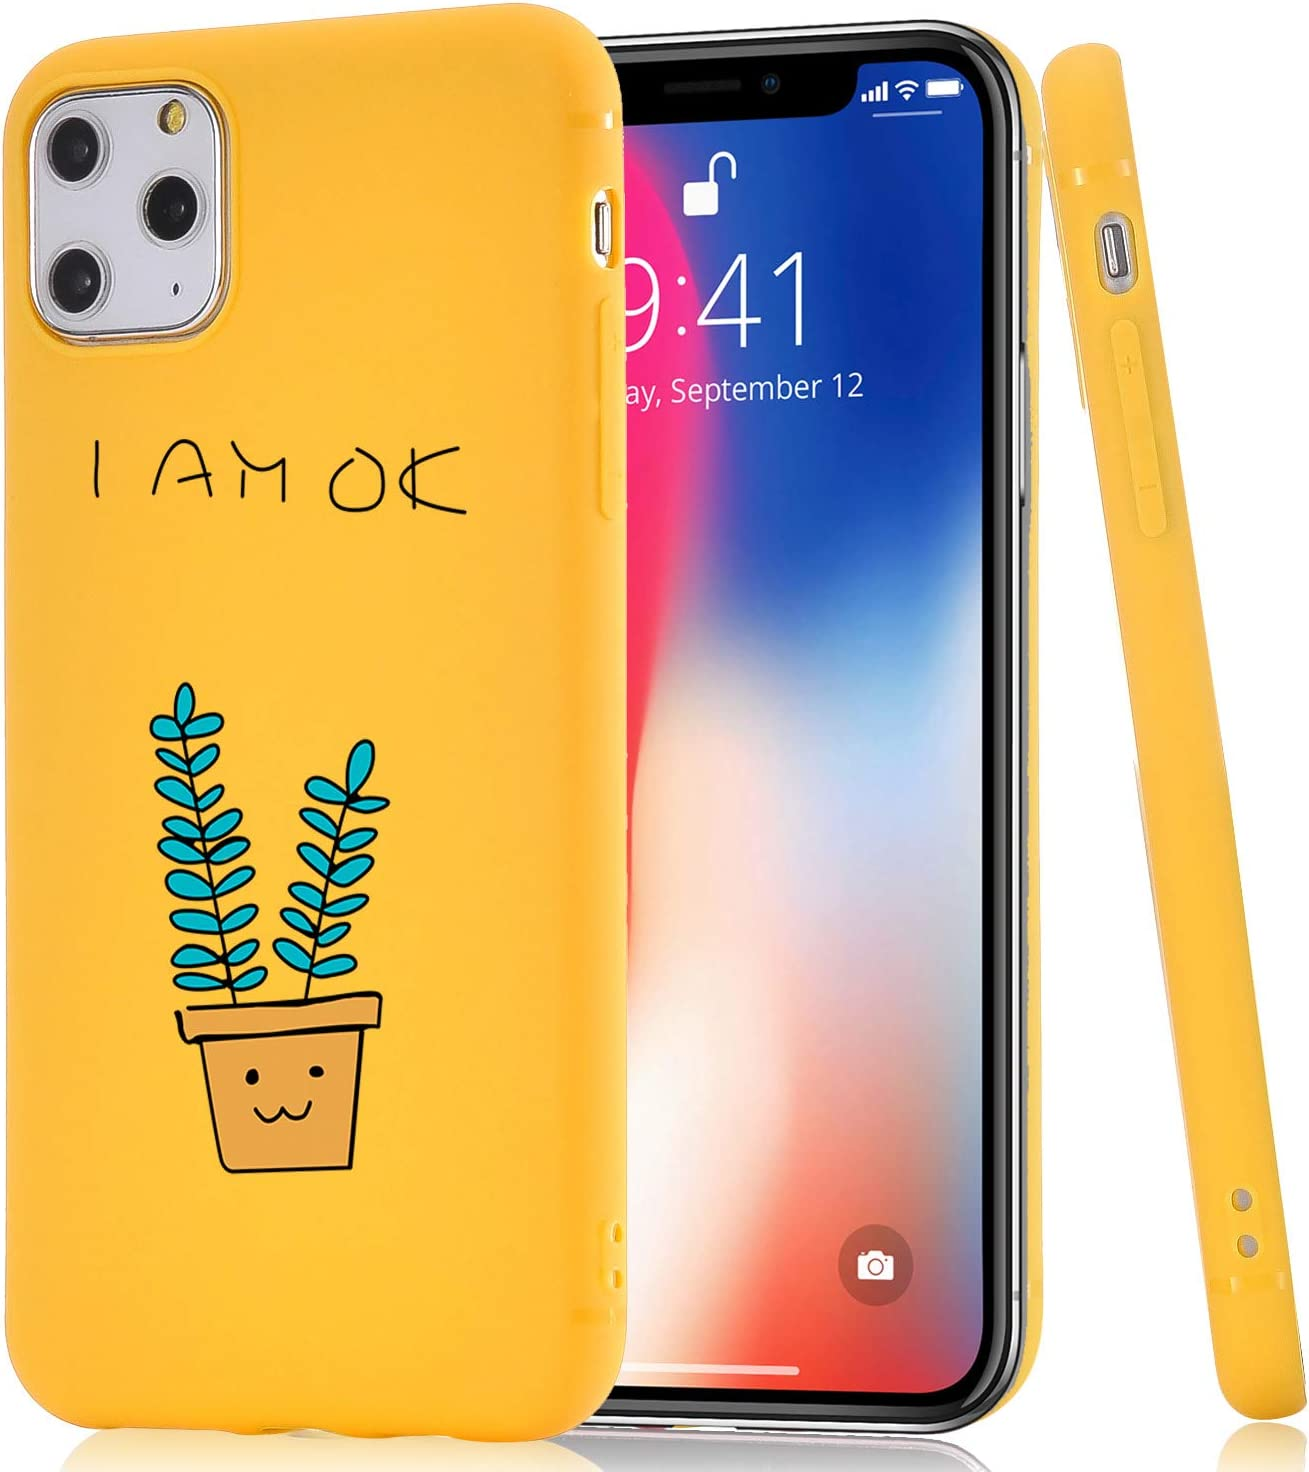 JOYLAND Yellow Case for iPhone 6/6S Case Cute Cactus Cacti Pattern Yellow Phone Cover Flexible Soft TPU Bumper Candy Color Case for iPhone 6/6S